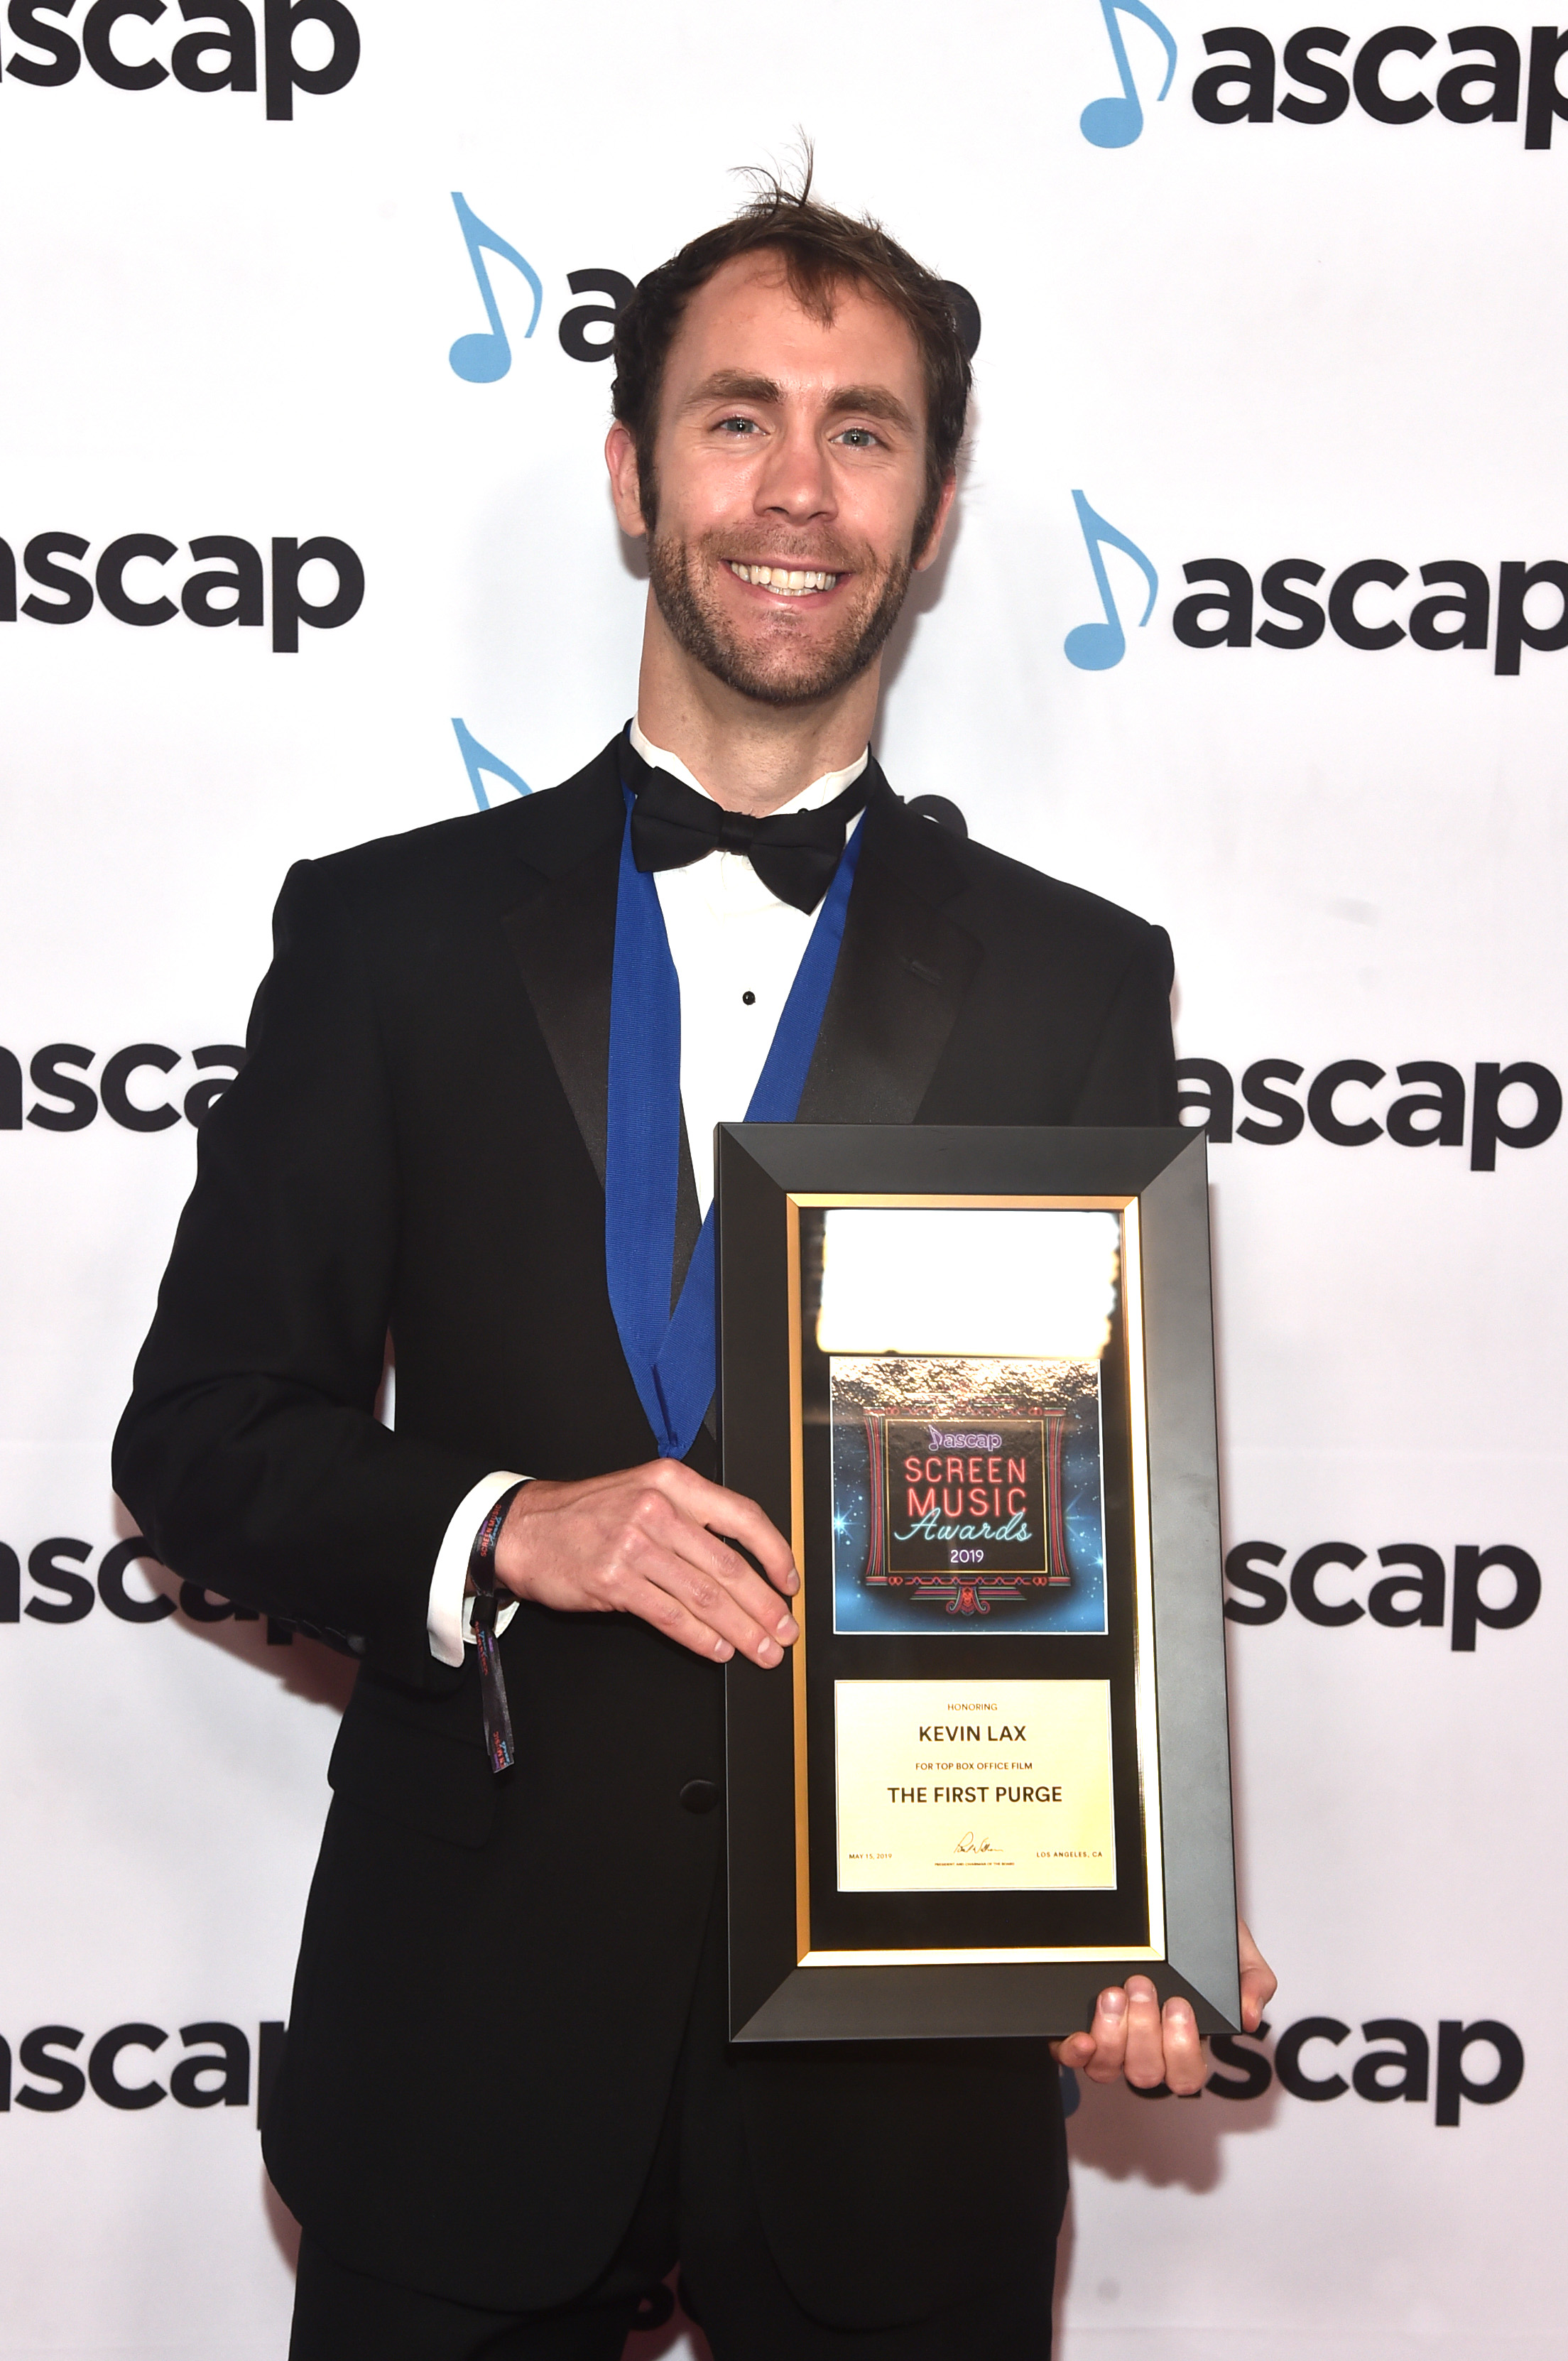 BEVERLY HILLS, CALIFORNIA - MAY 15: Composer Kevin Lax, winner of the award for Top Box Office Film 'The First Purge' attends the ASCAP 2019 Screen Music Awards at The Beverly Hilton Hotel on May 15, 2019 in Beverly Hills, California. (Photo by Alberto E. Rodriguez/Getty Images for ASCAP)